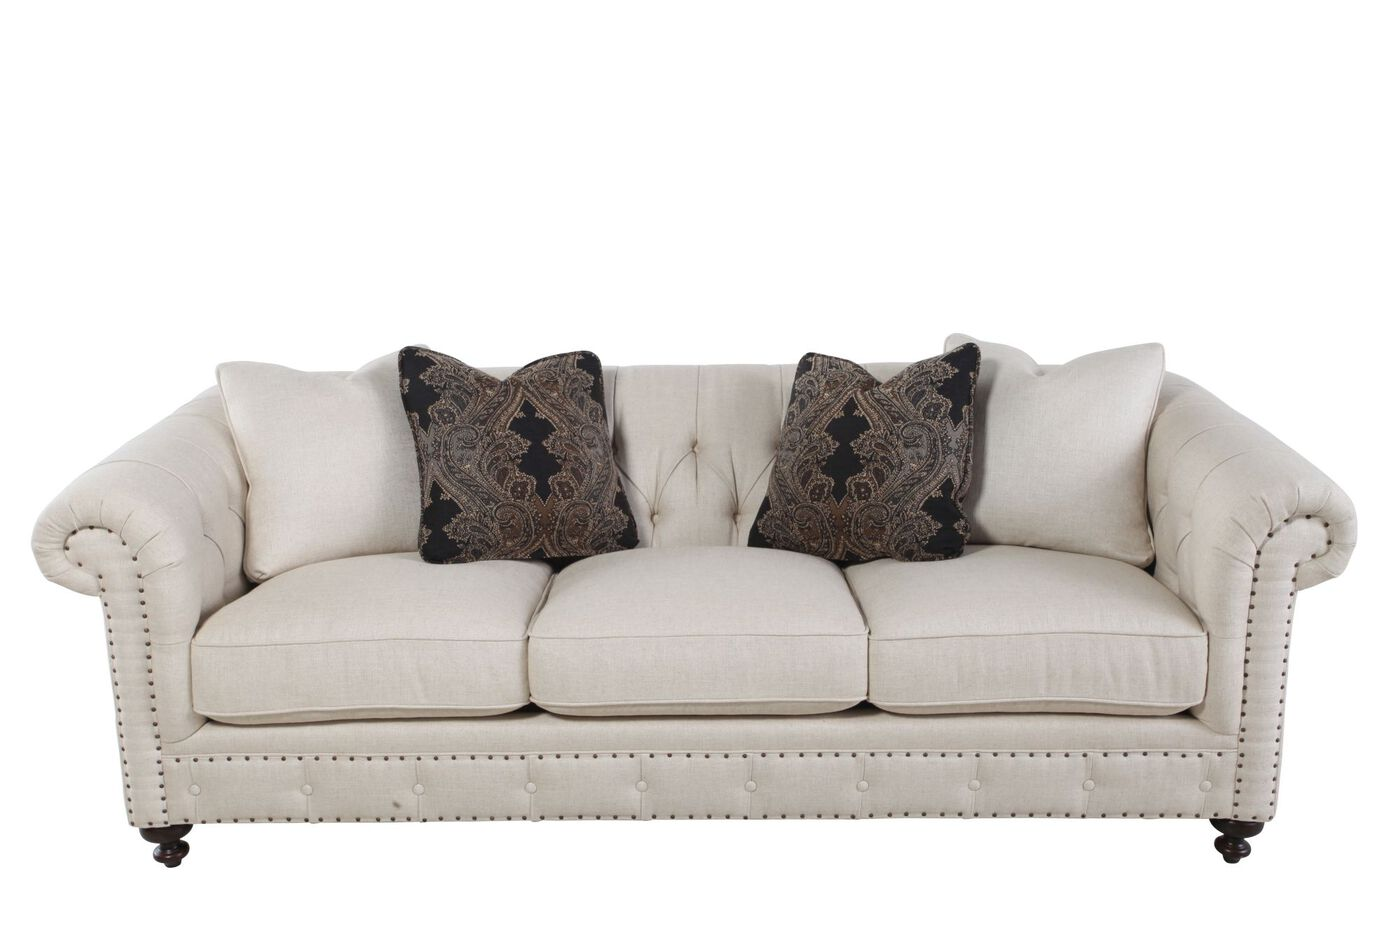 European Classic Button Tufted Sofa In Cream Mathis